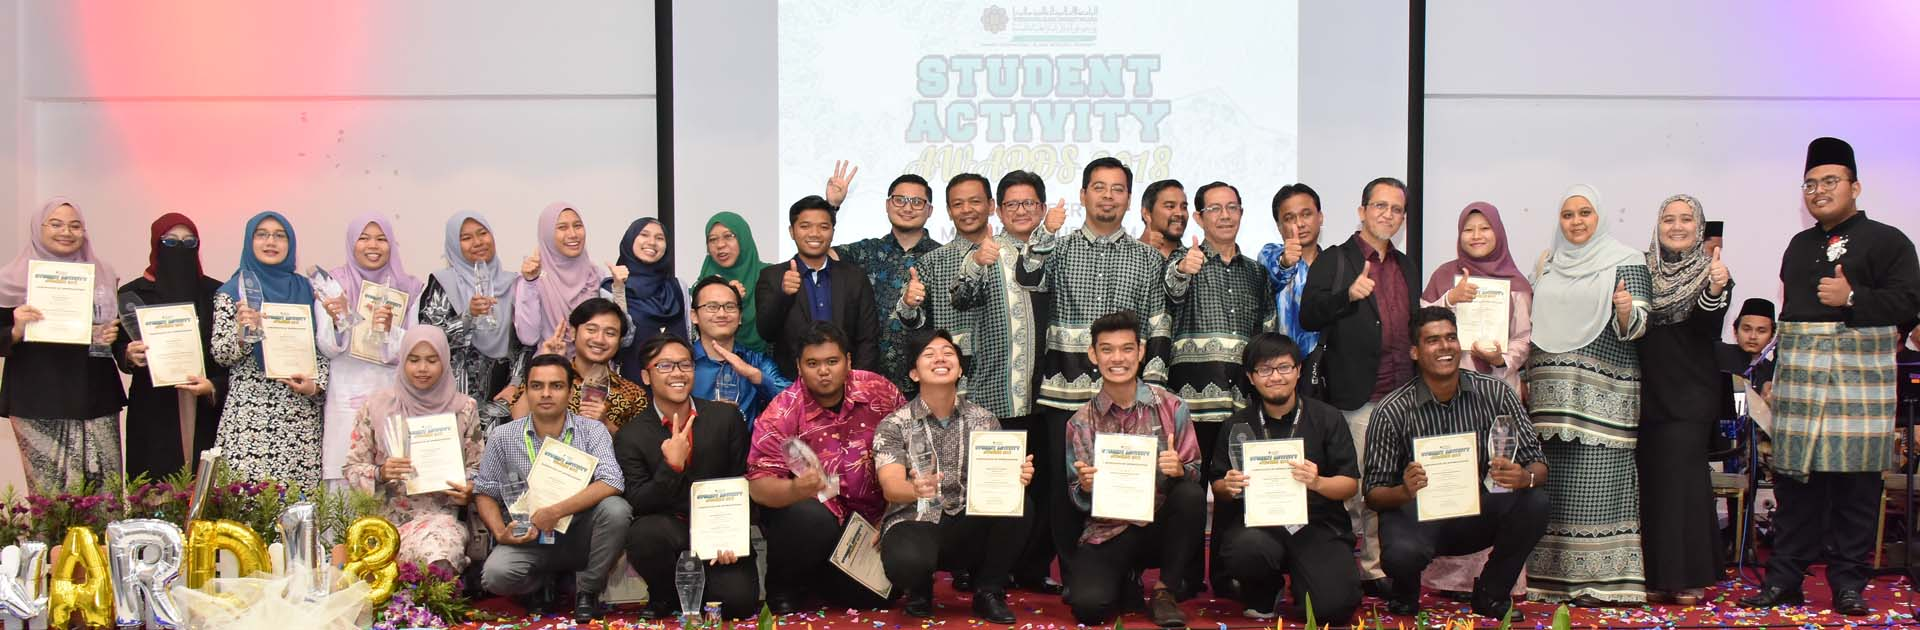 Students Activity Award 2018